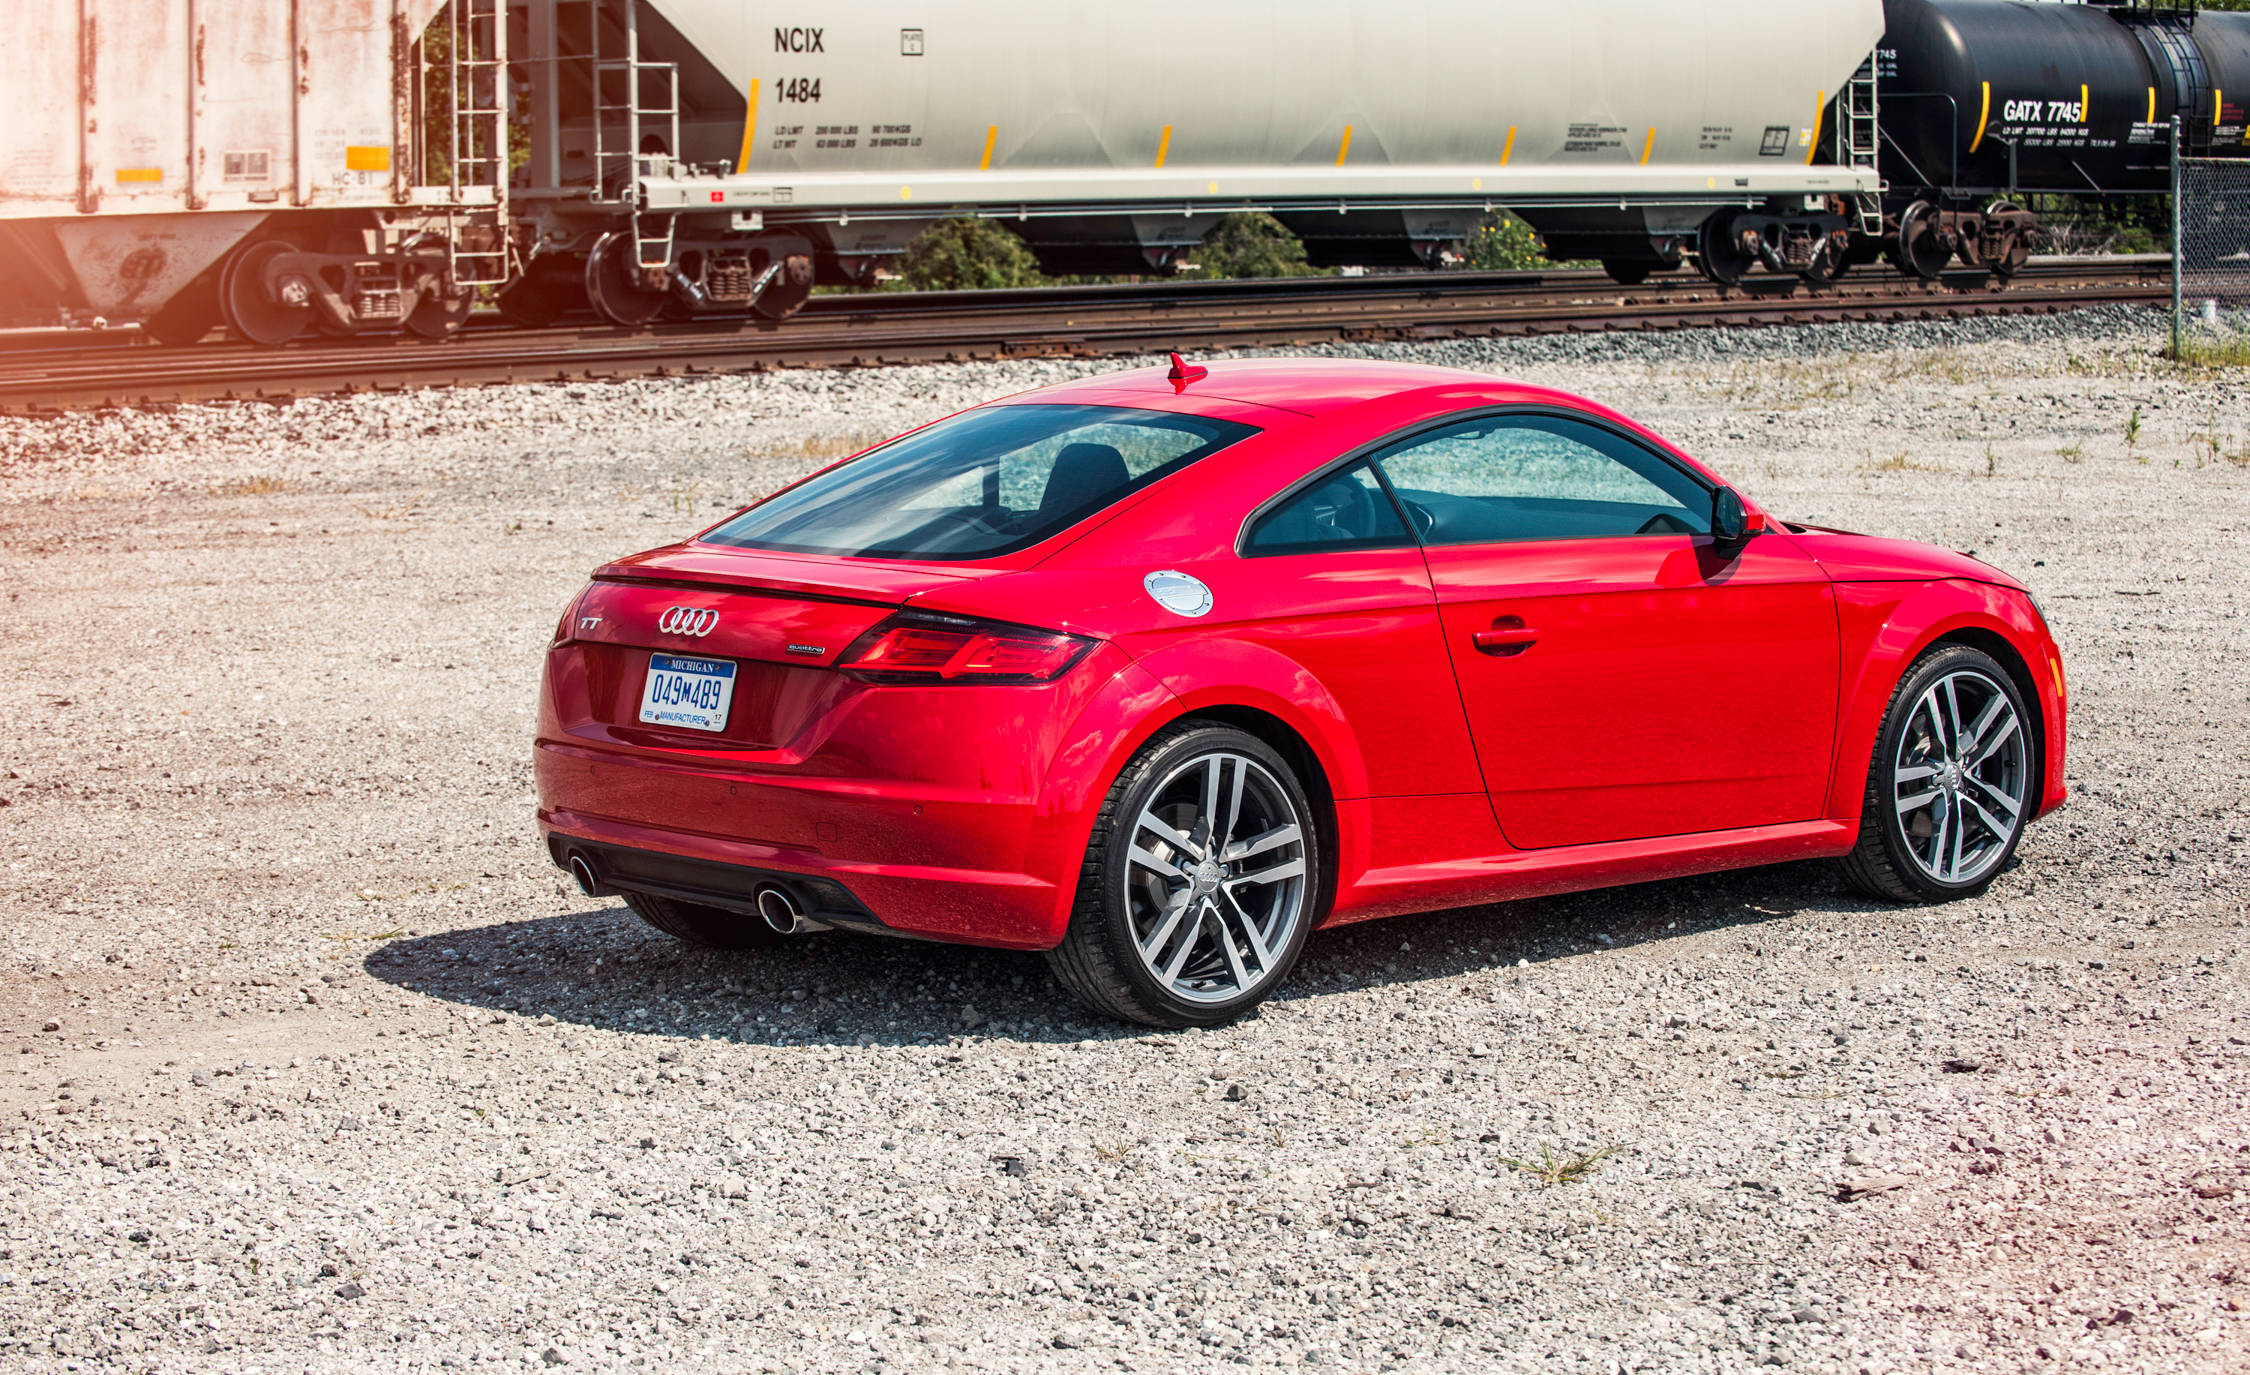 2016 Audi TT Coupe Exterior Rear and Side View